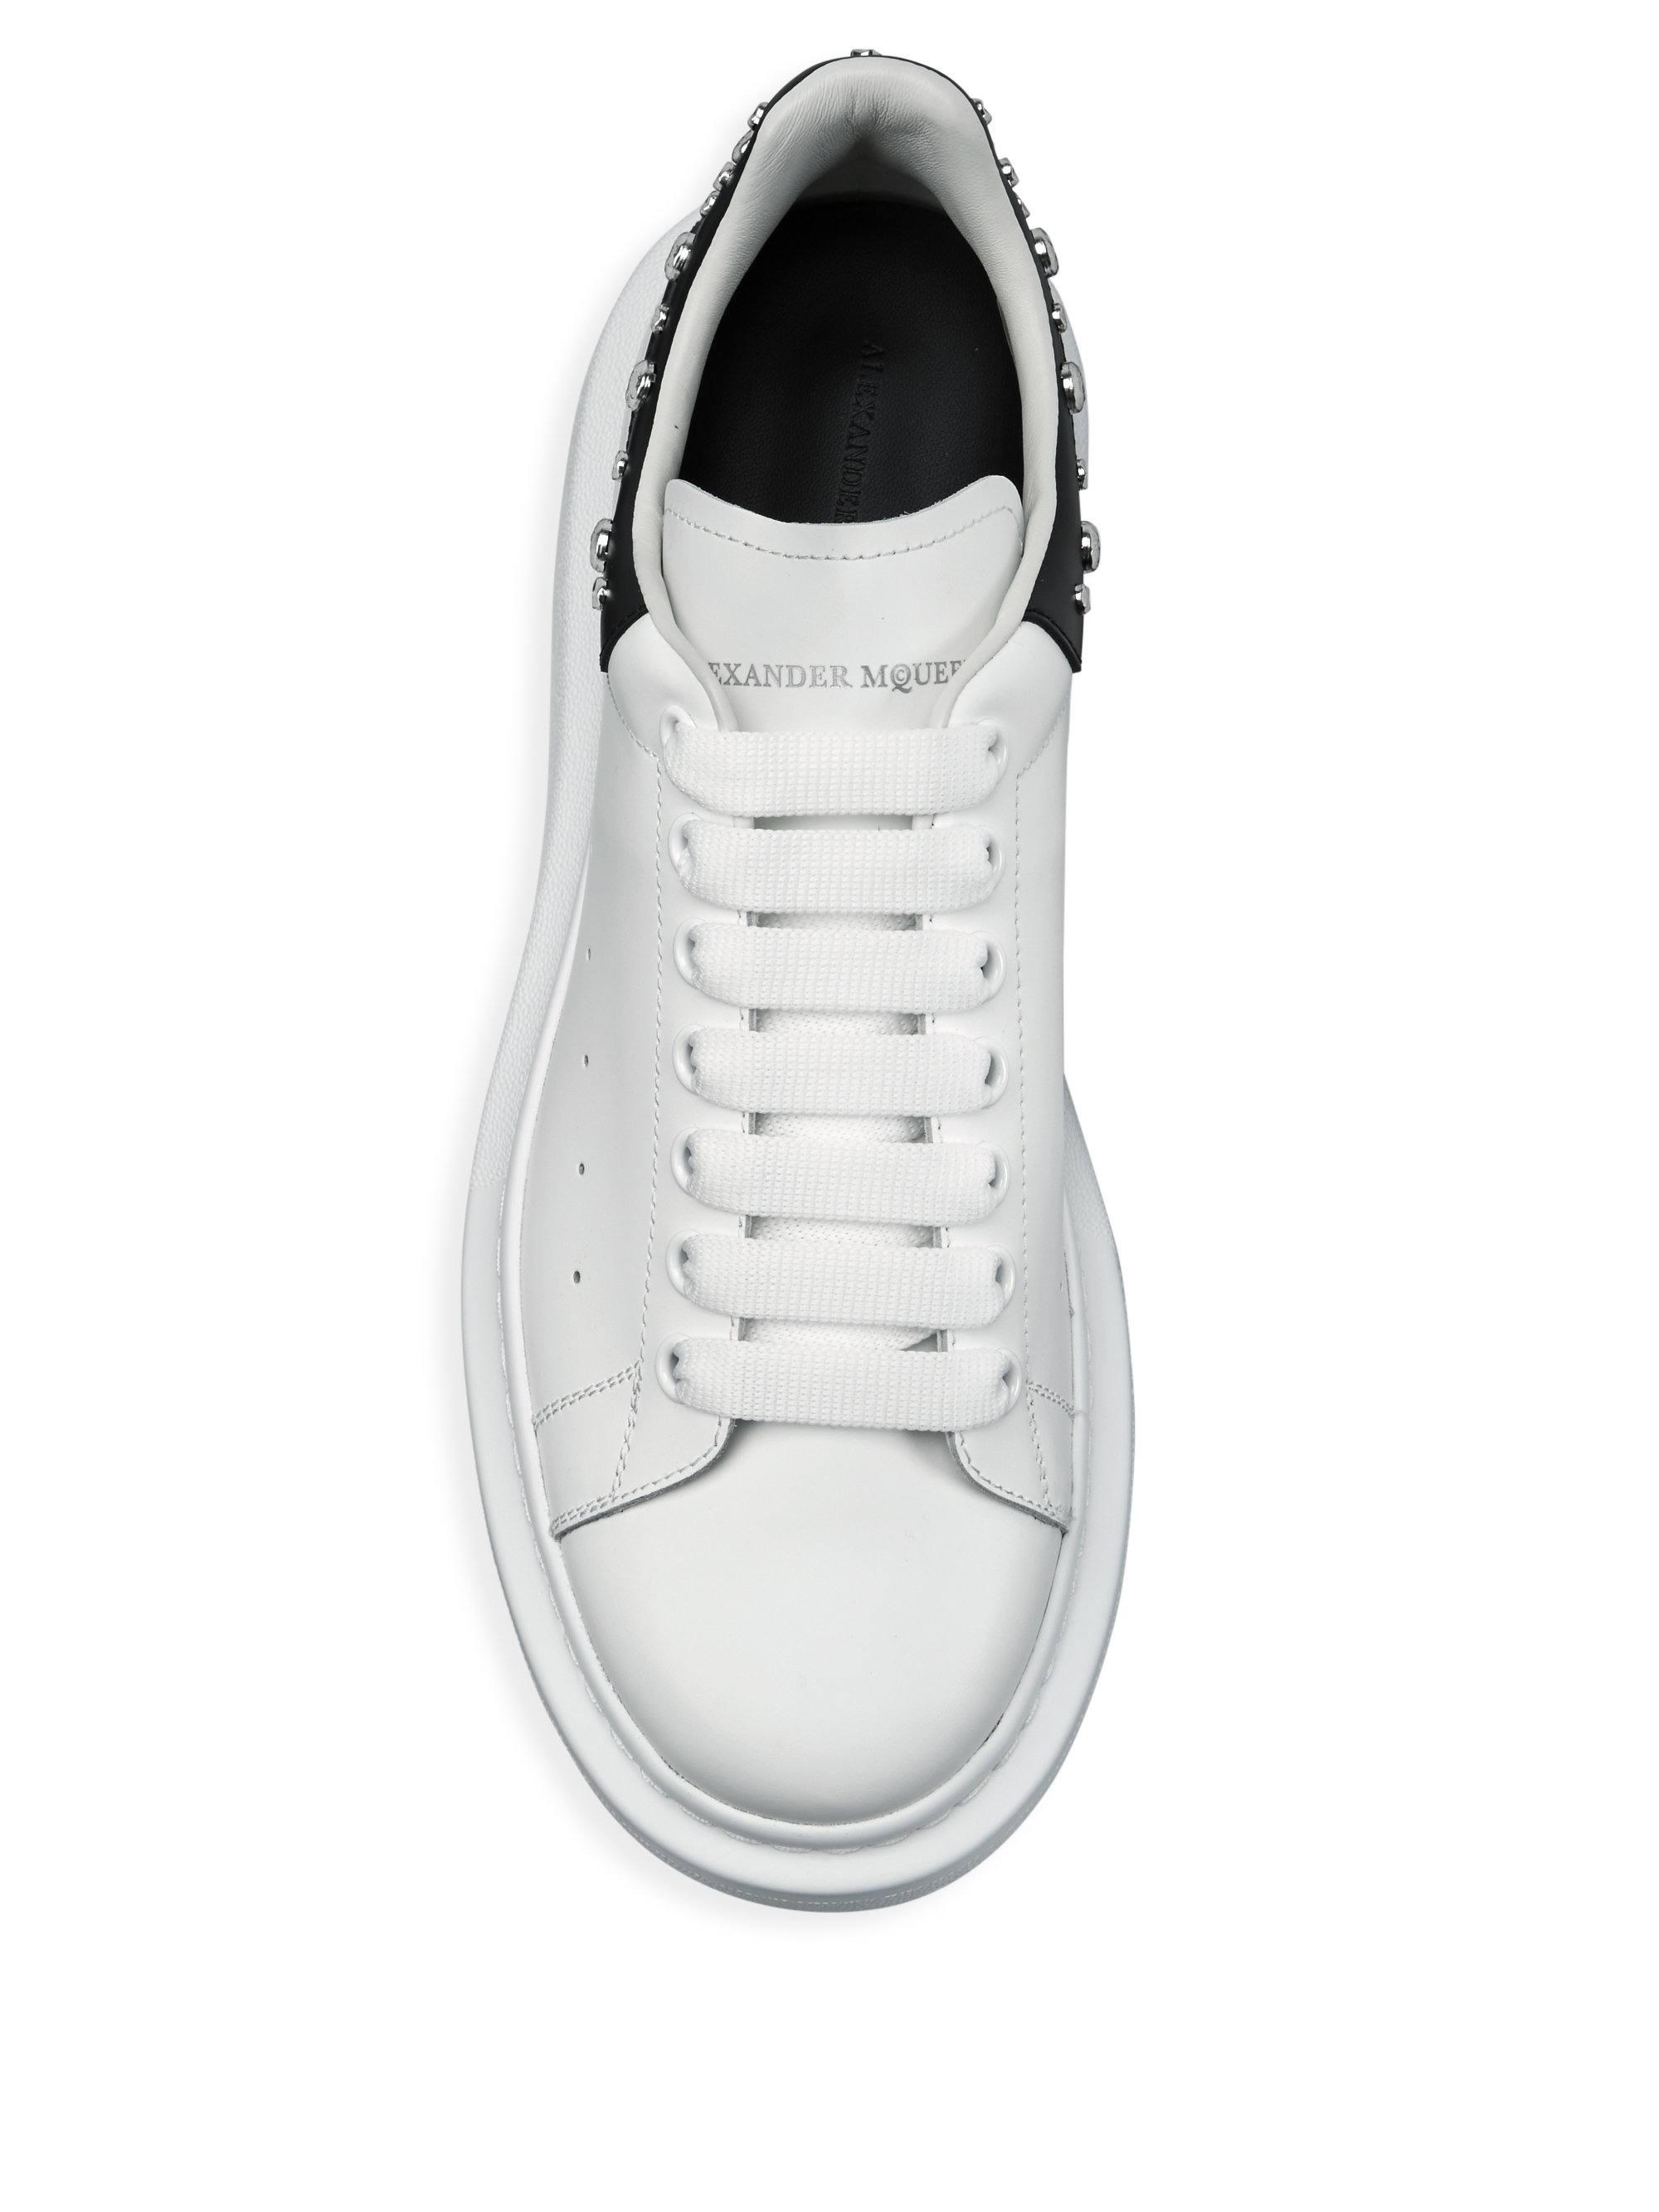 c44bb1b480b0 Lyst - Alexander Mcqueen Oversized Studded Leather Sneakers in White for Men